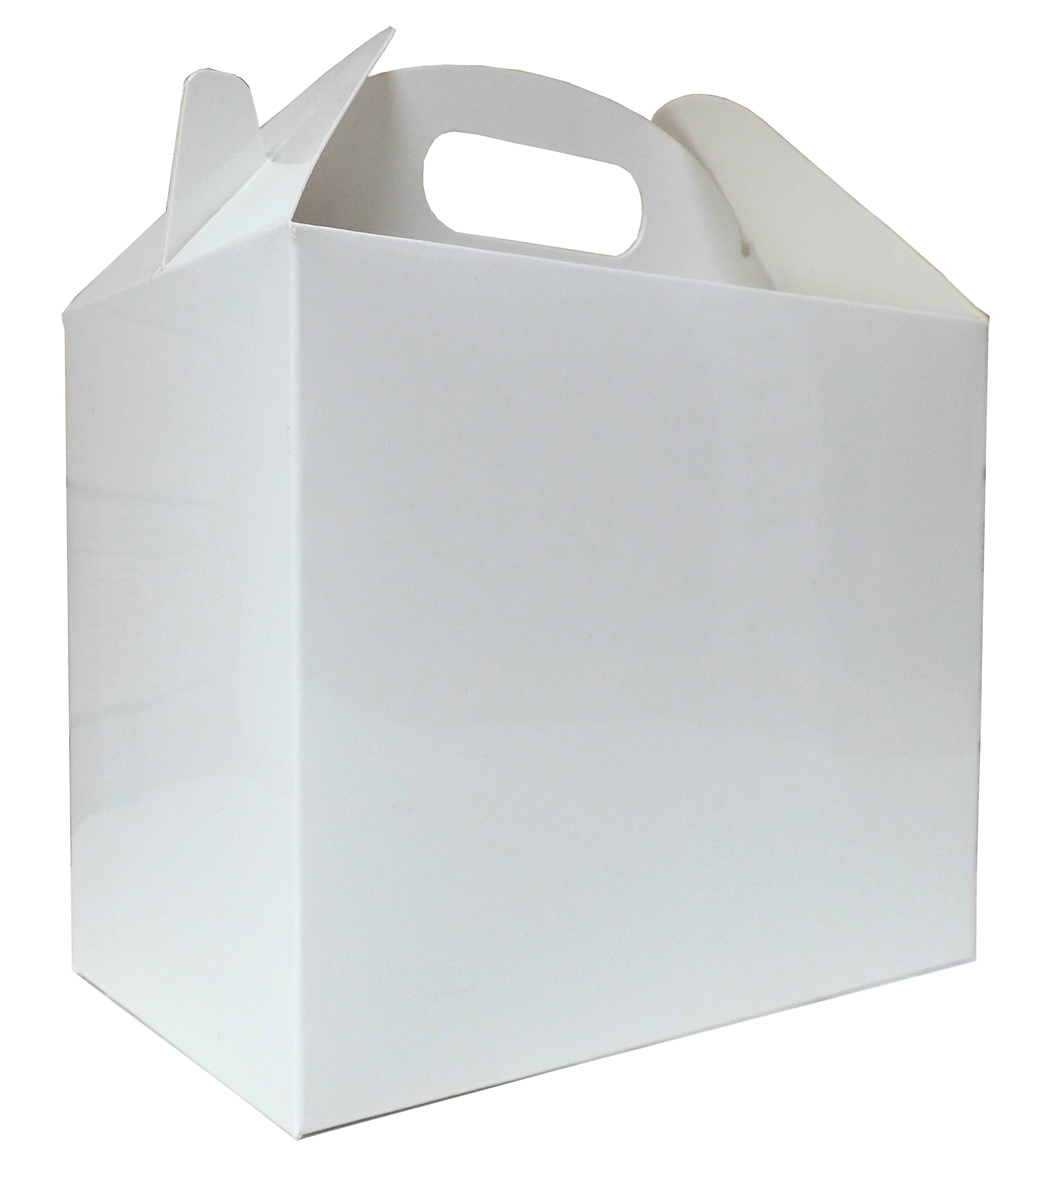 Pack of 10 GABLE BOXES 17x10x14cm - GLOSSY WHITE